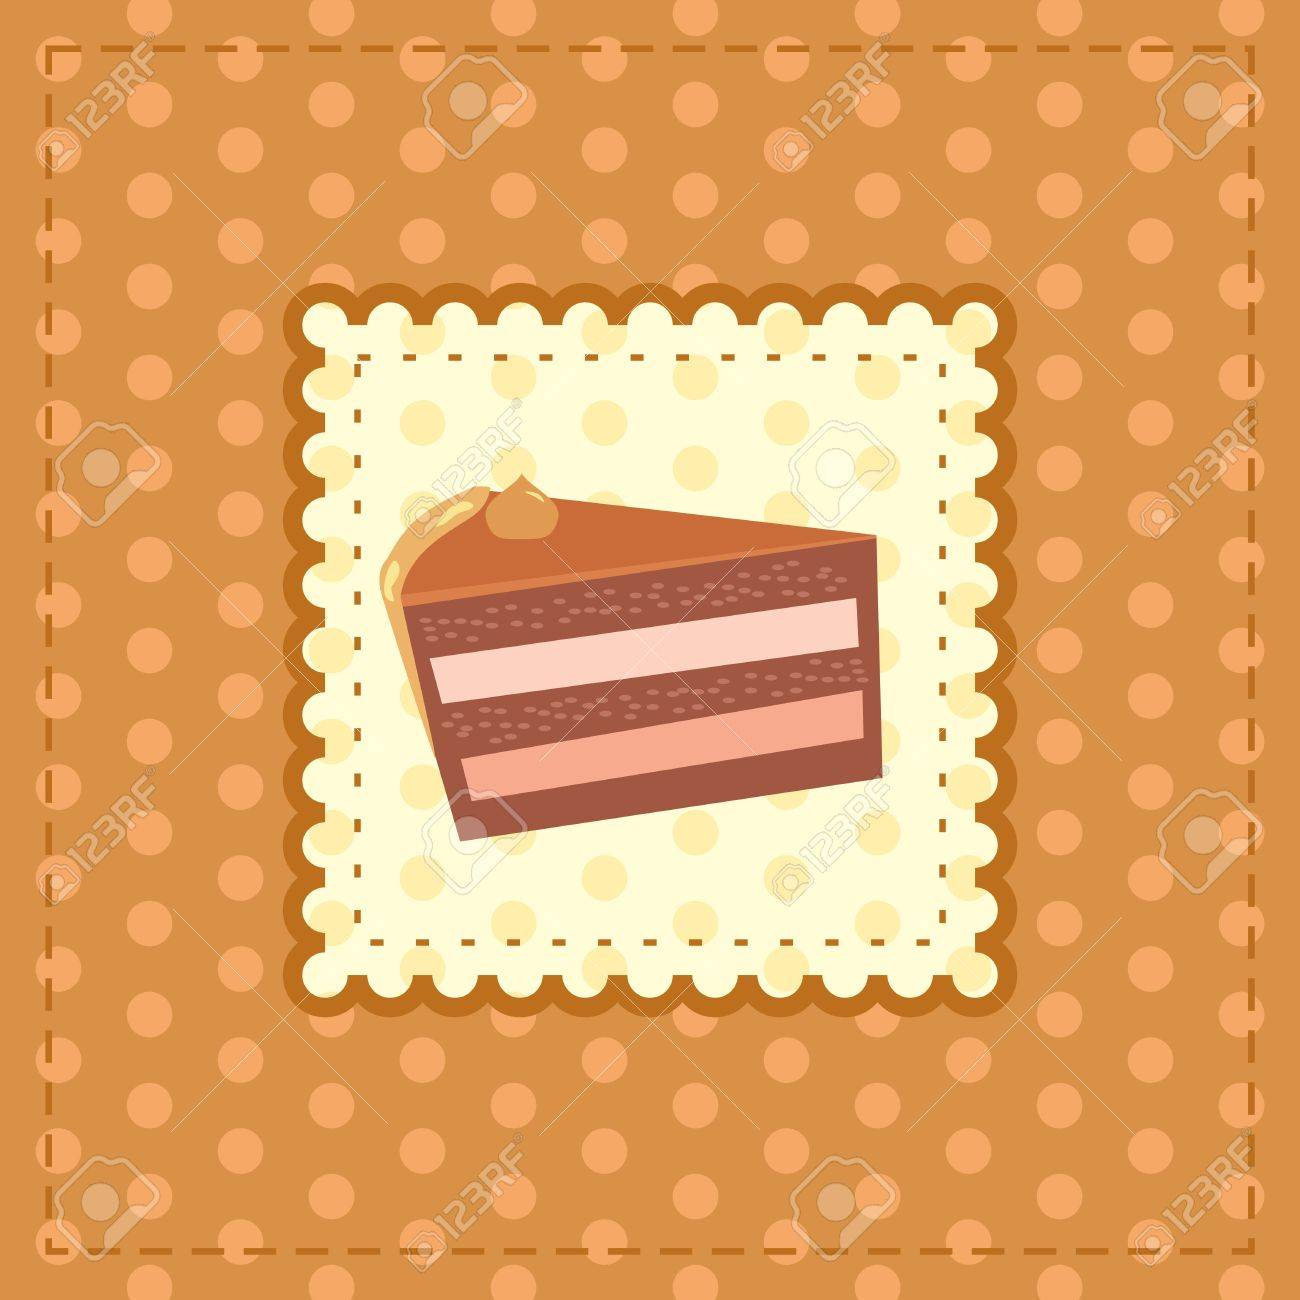 greeting card with a piece of cake Stock Vector - 14083346